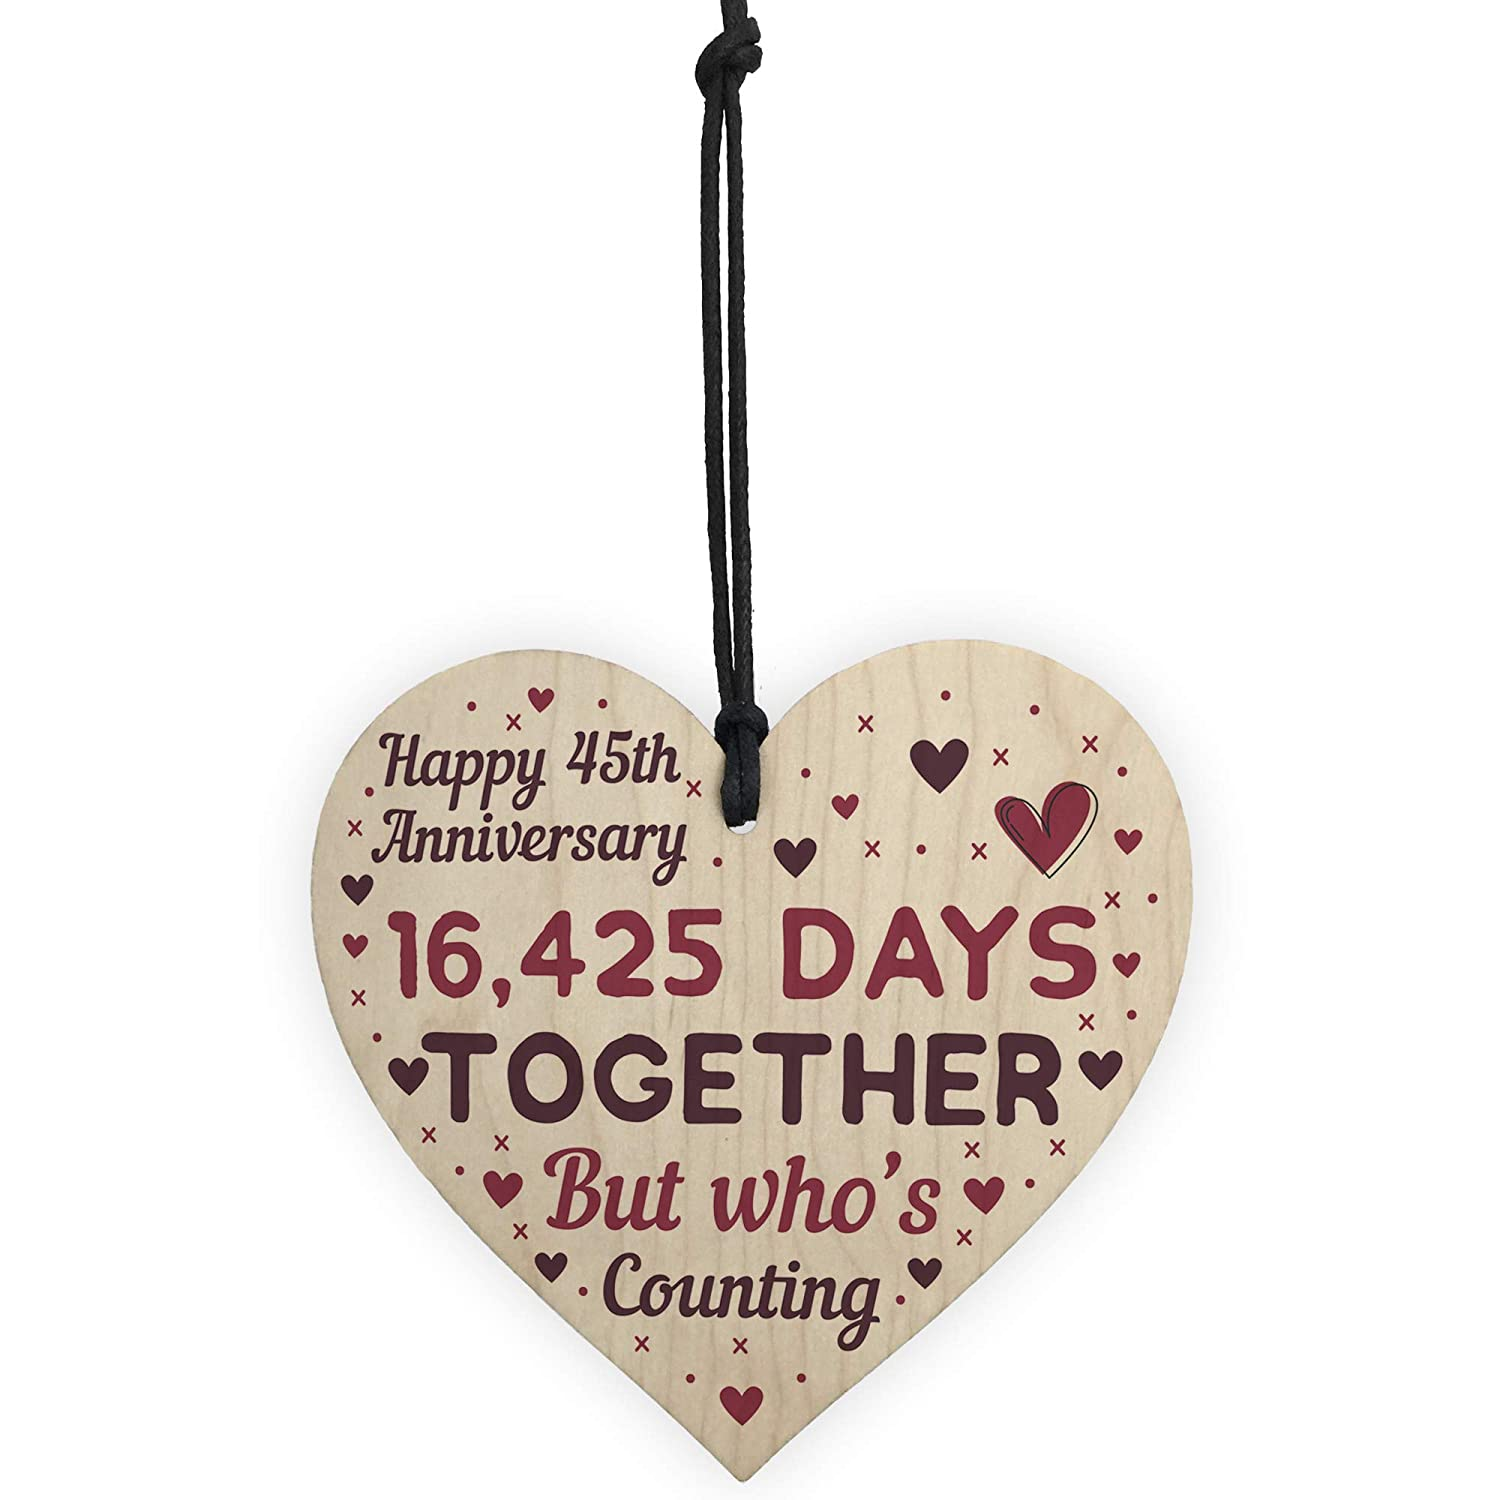 RED OCEAN Handmade Wooden Heart Plaque Gift To Celebrate 1st Wedding Anniversary Husband Wife Someone Special Keepsake 1 Year